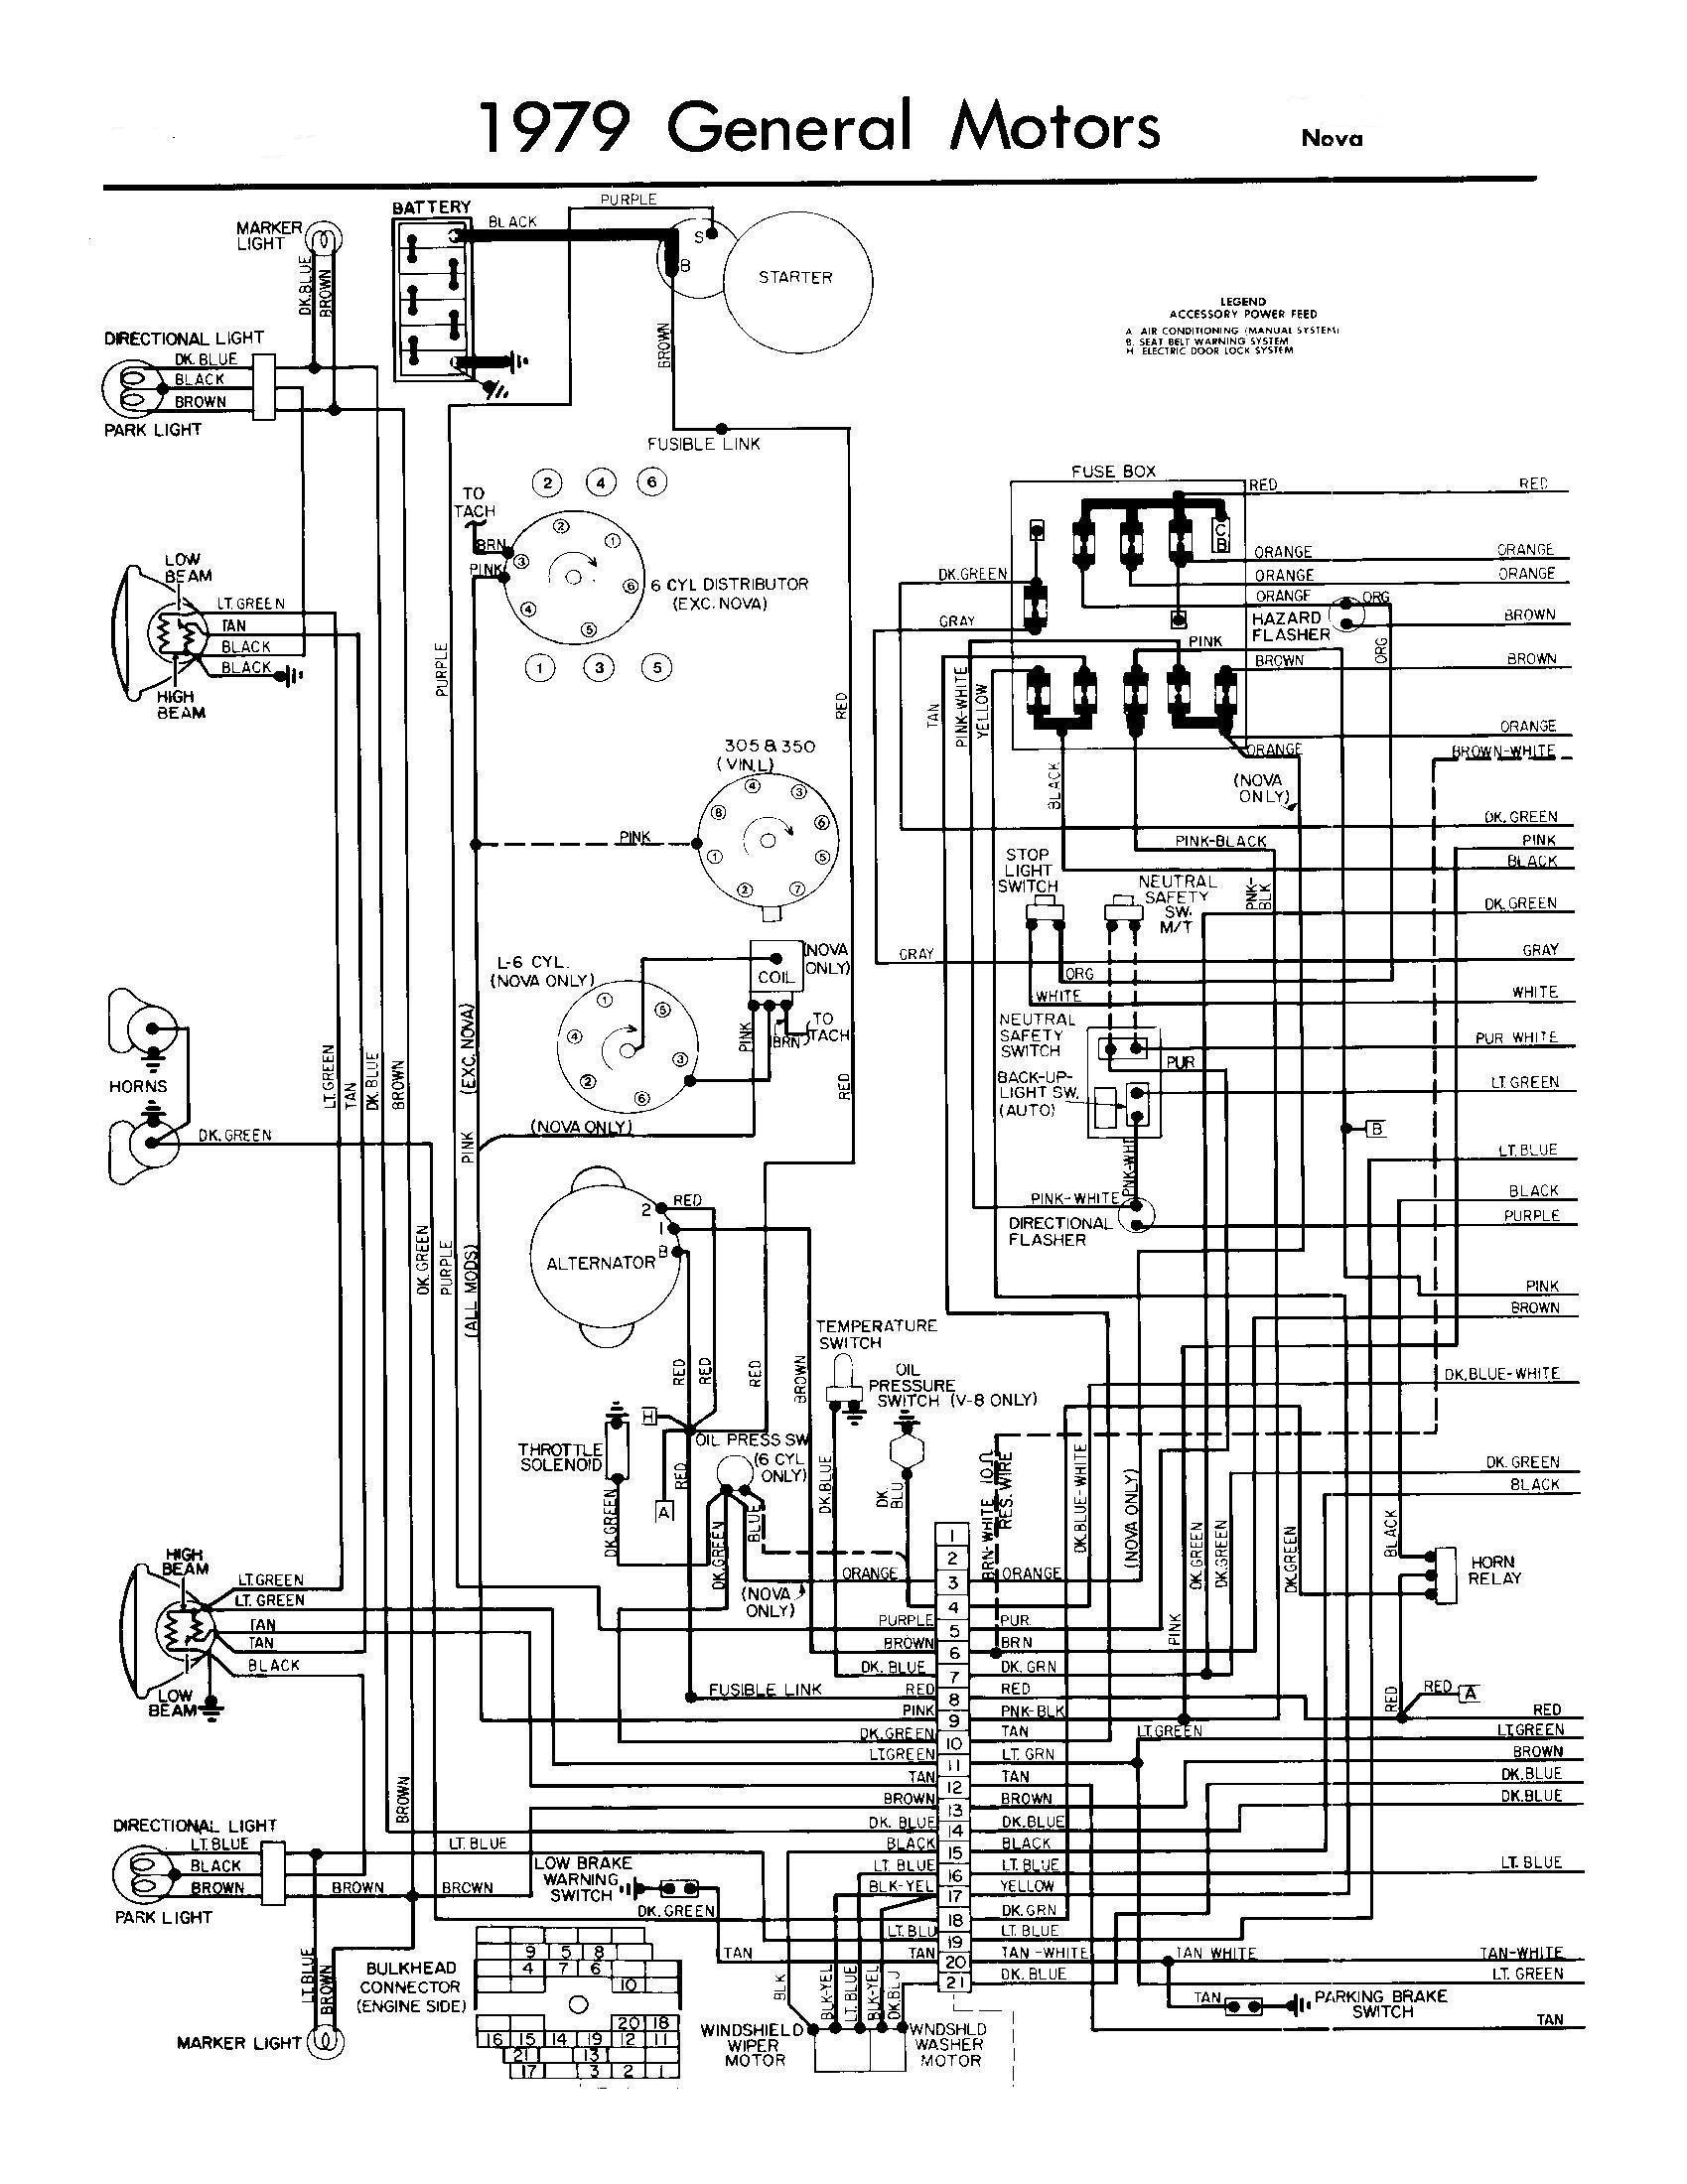 85 cj7 headlight switch wiring diagram wiring diagram